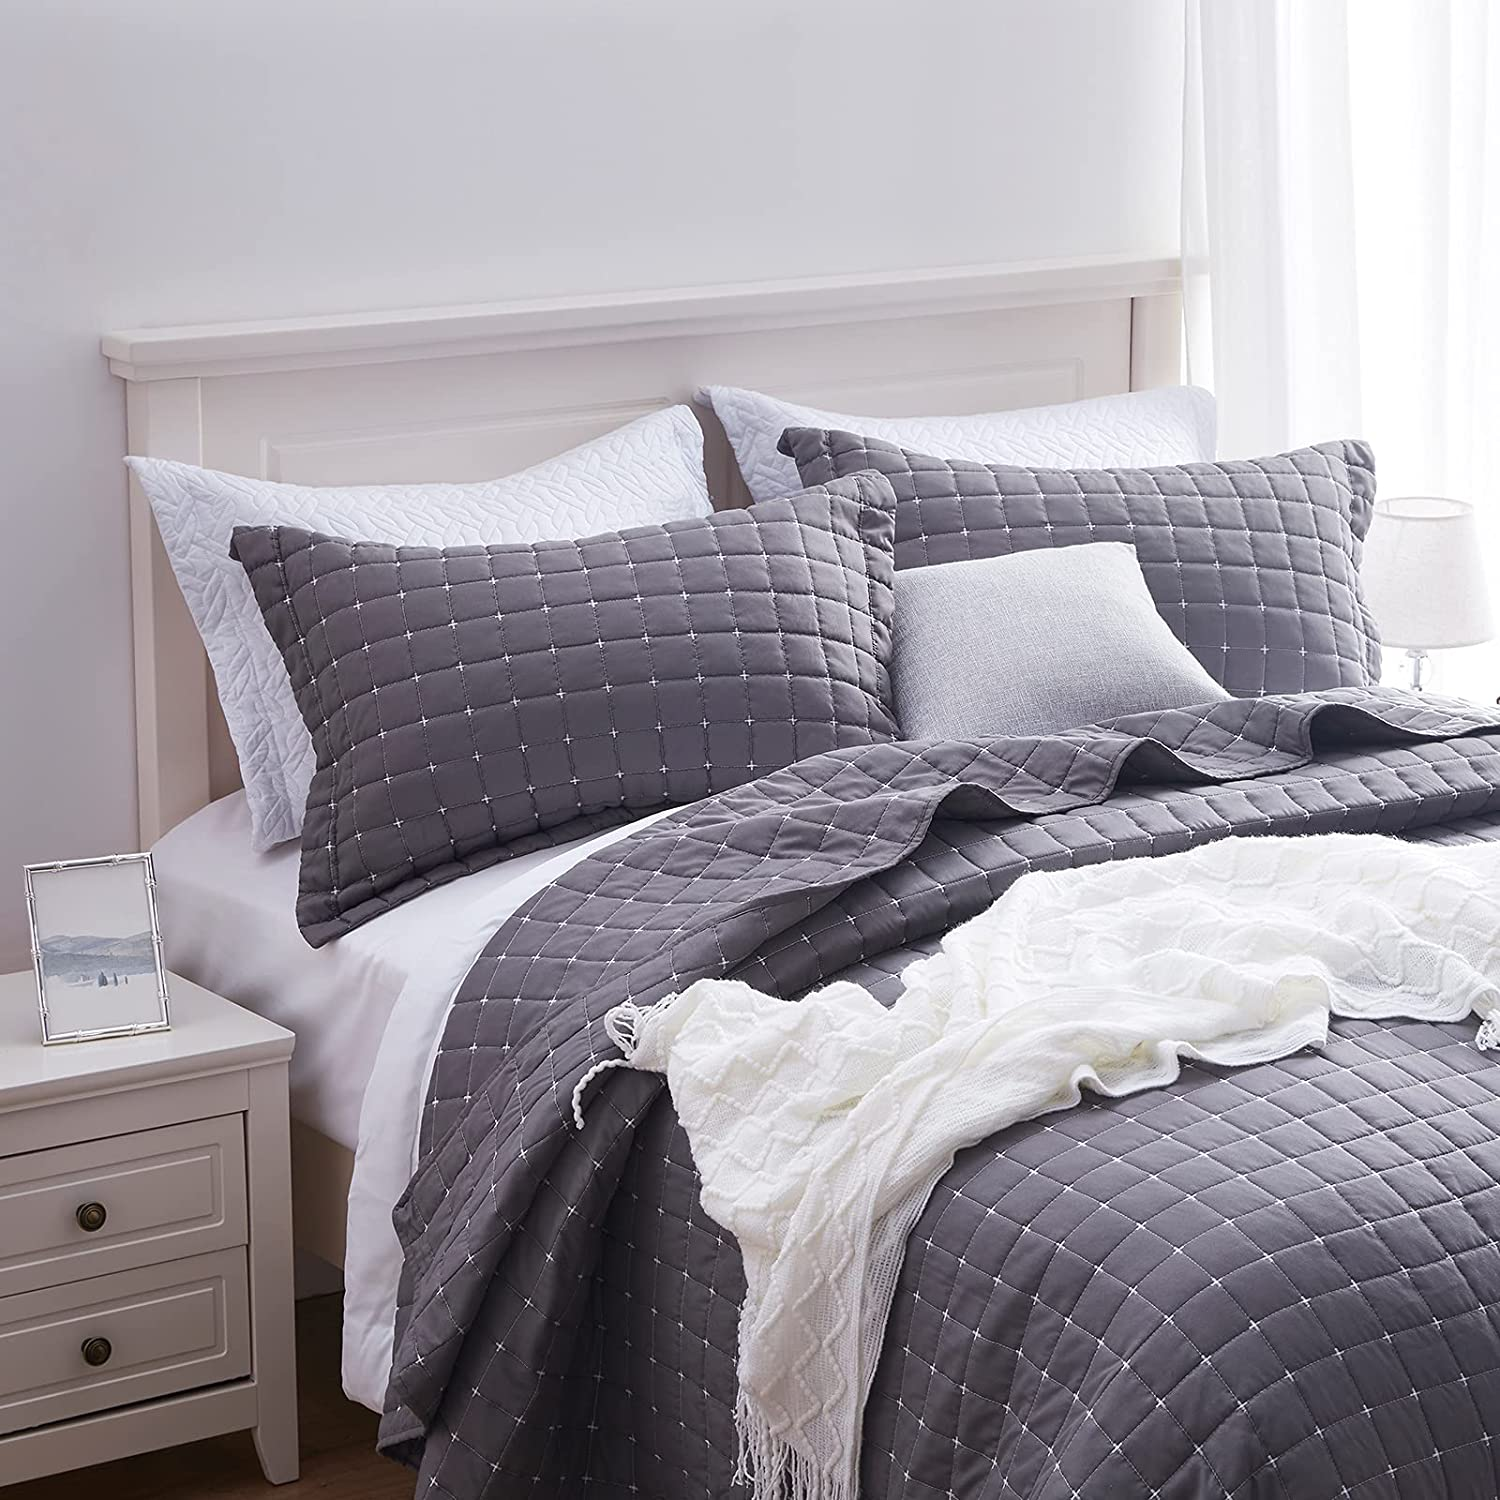 SunStyle Home Quilt Max Direct store 64% OFF Set King Coverlet Lightweight Grey Bedspread